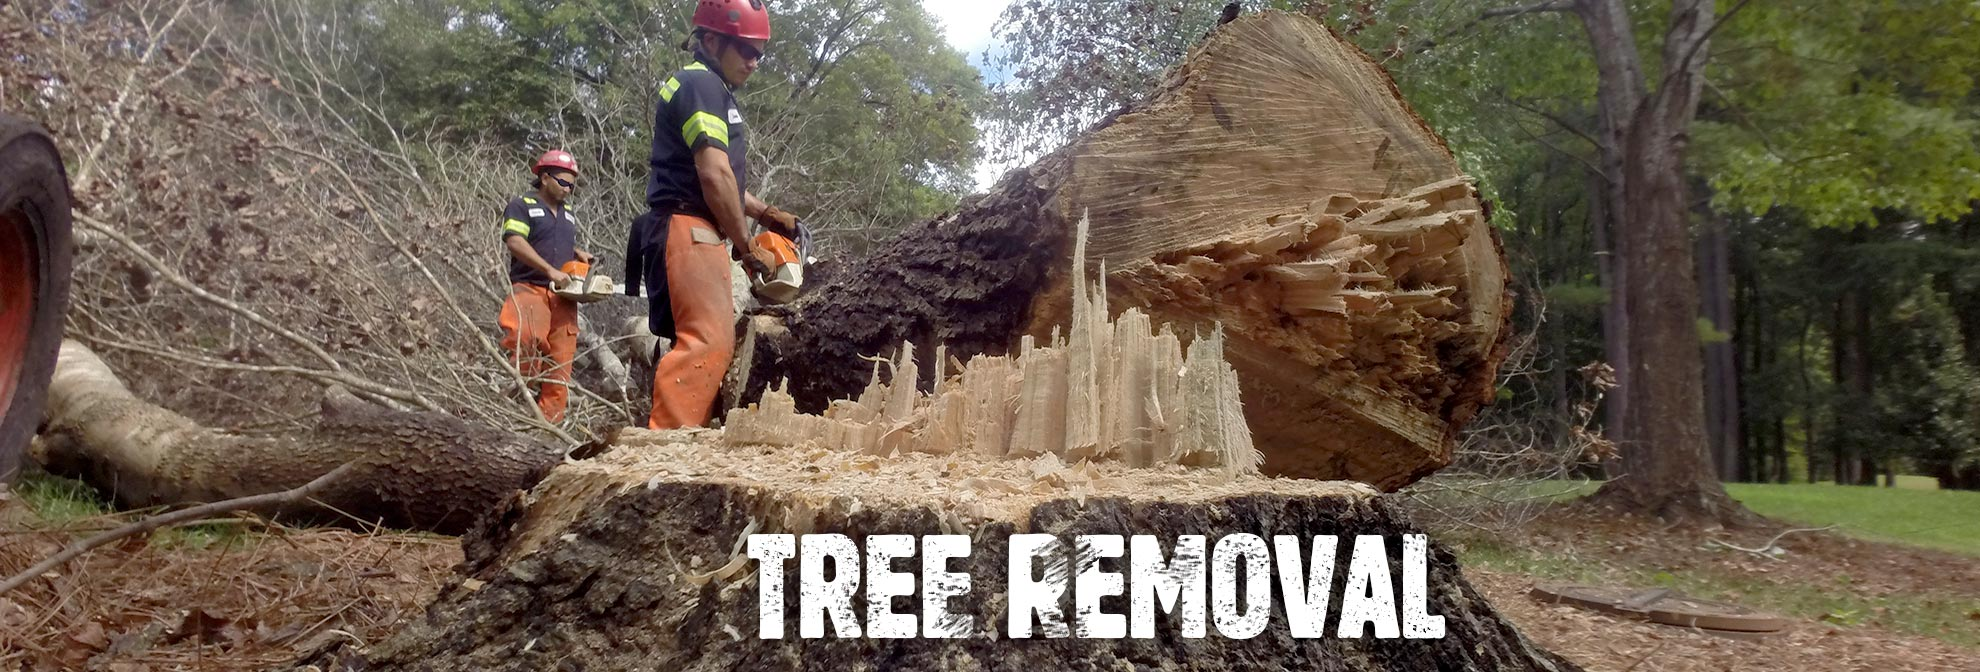 Tree Removal Arbormax Tree Service